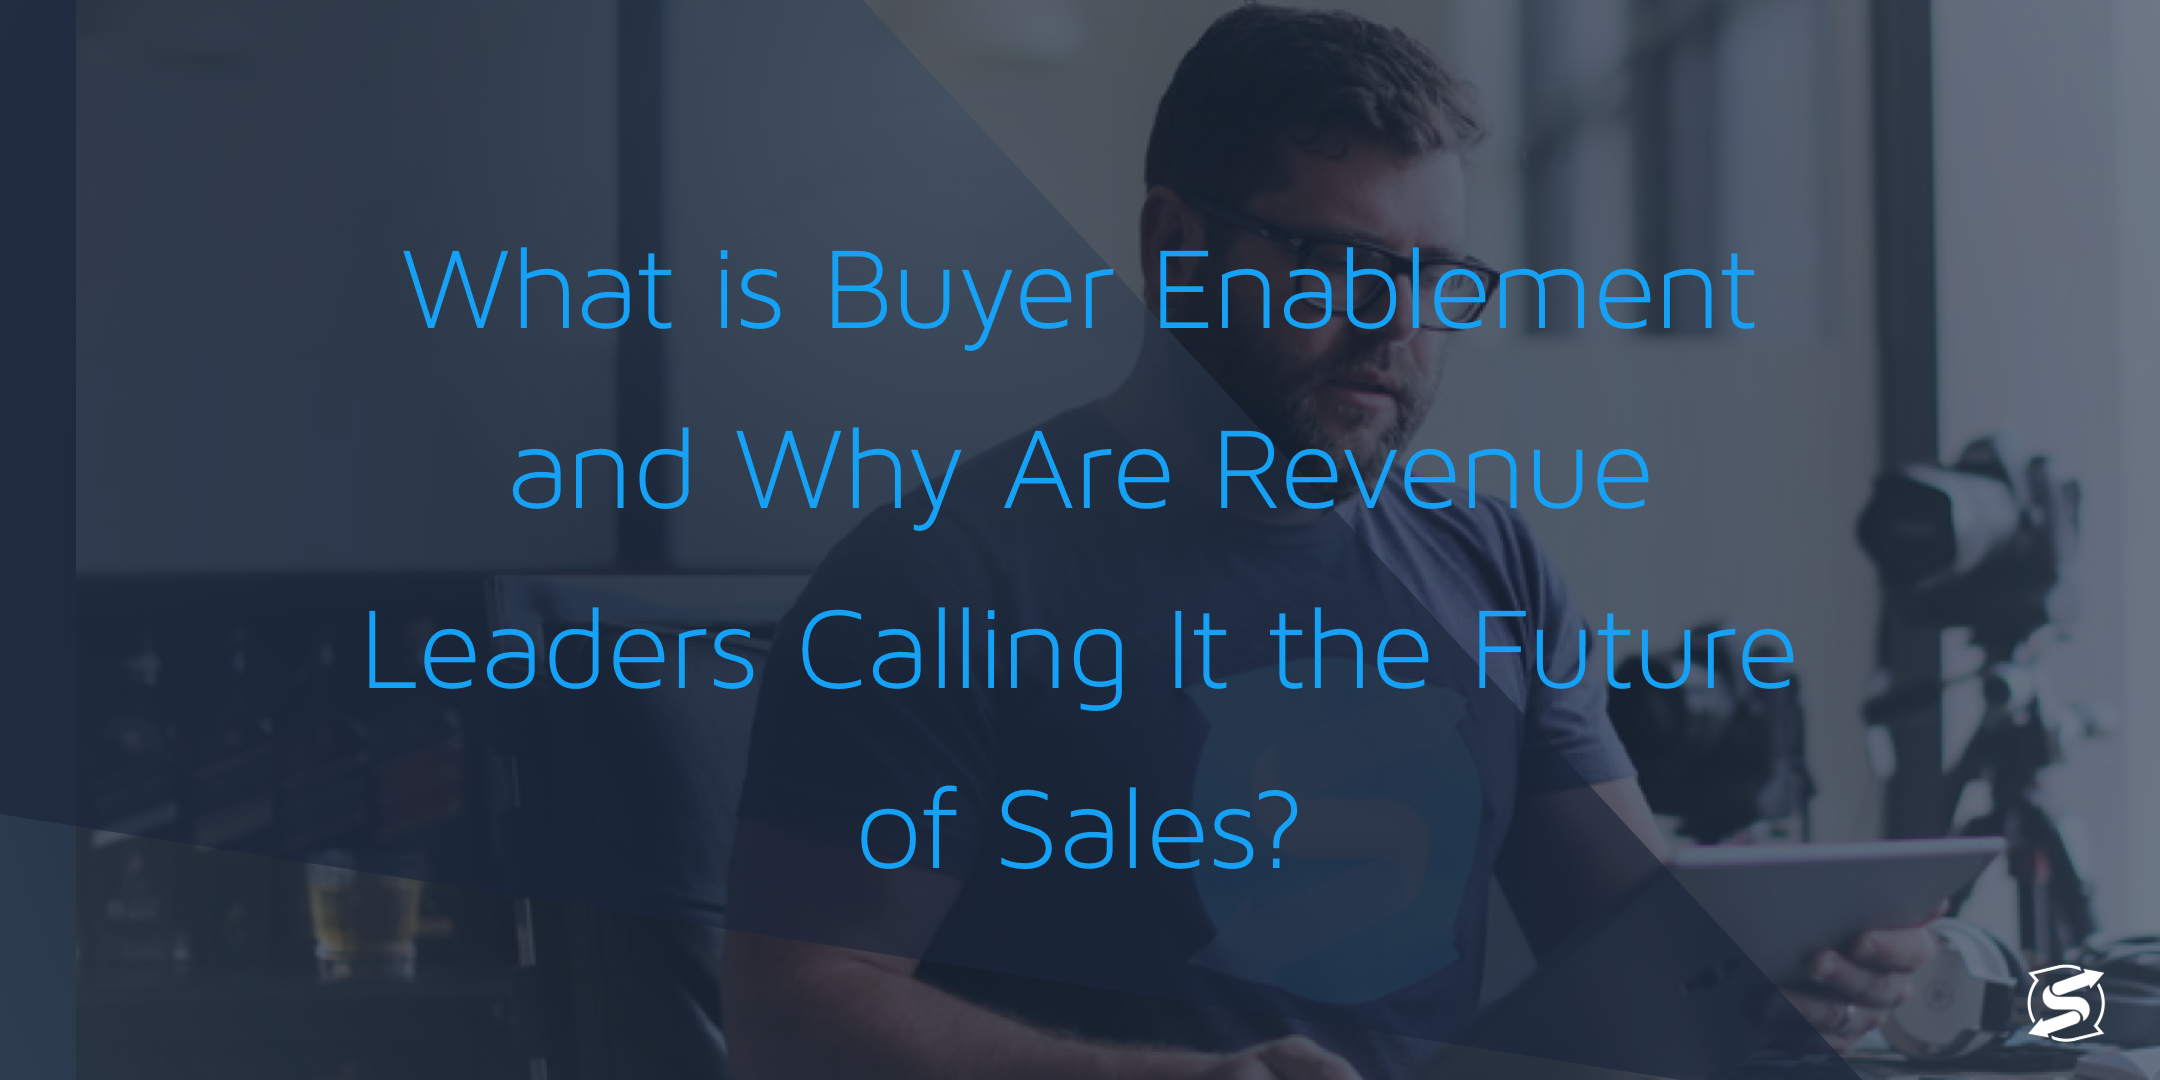 b2b sales managers need buyer enablement